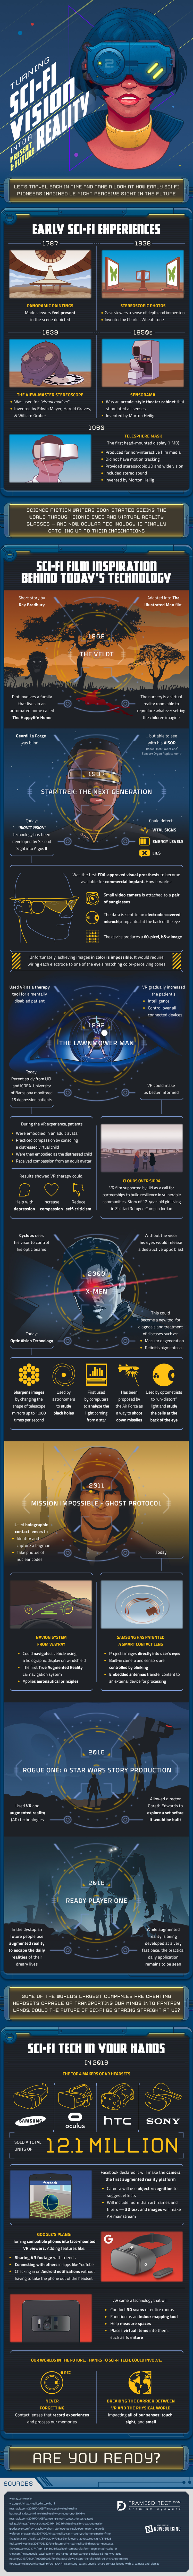 Sci-Fi Vision. Or Future Reality? - Infographic